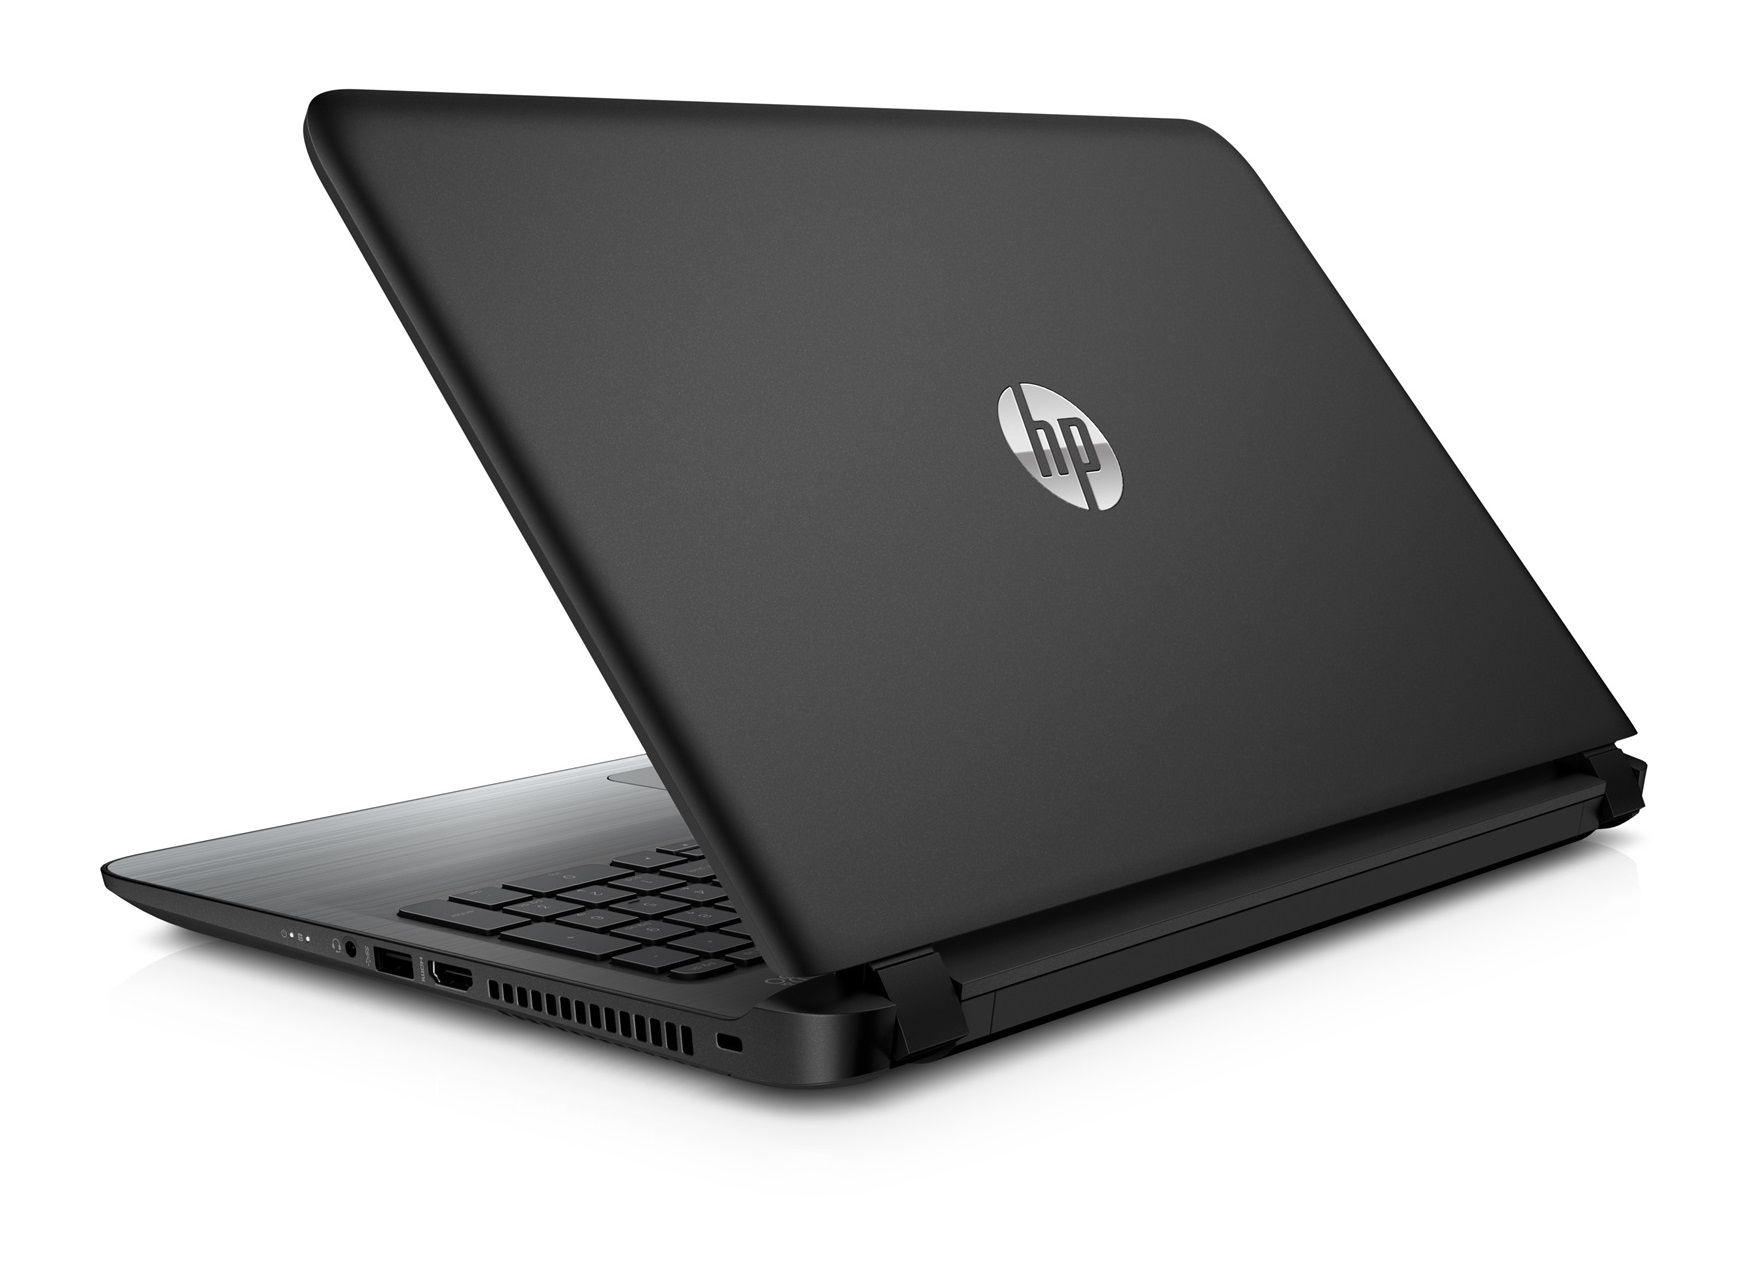 Hp Recalls Laptops Over Battery Heating Issues 91mobiles Com